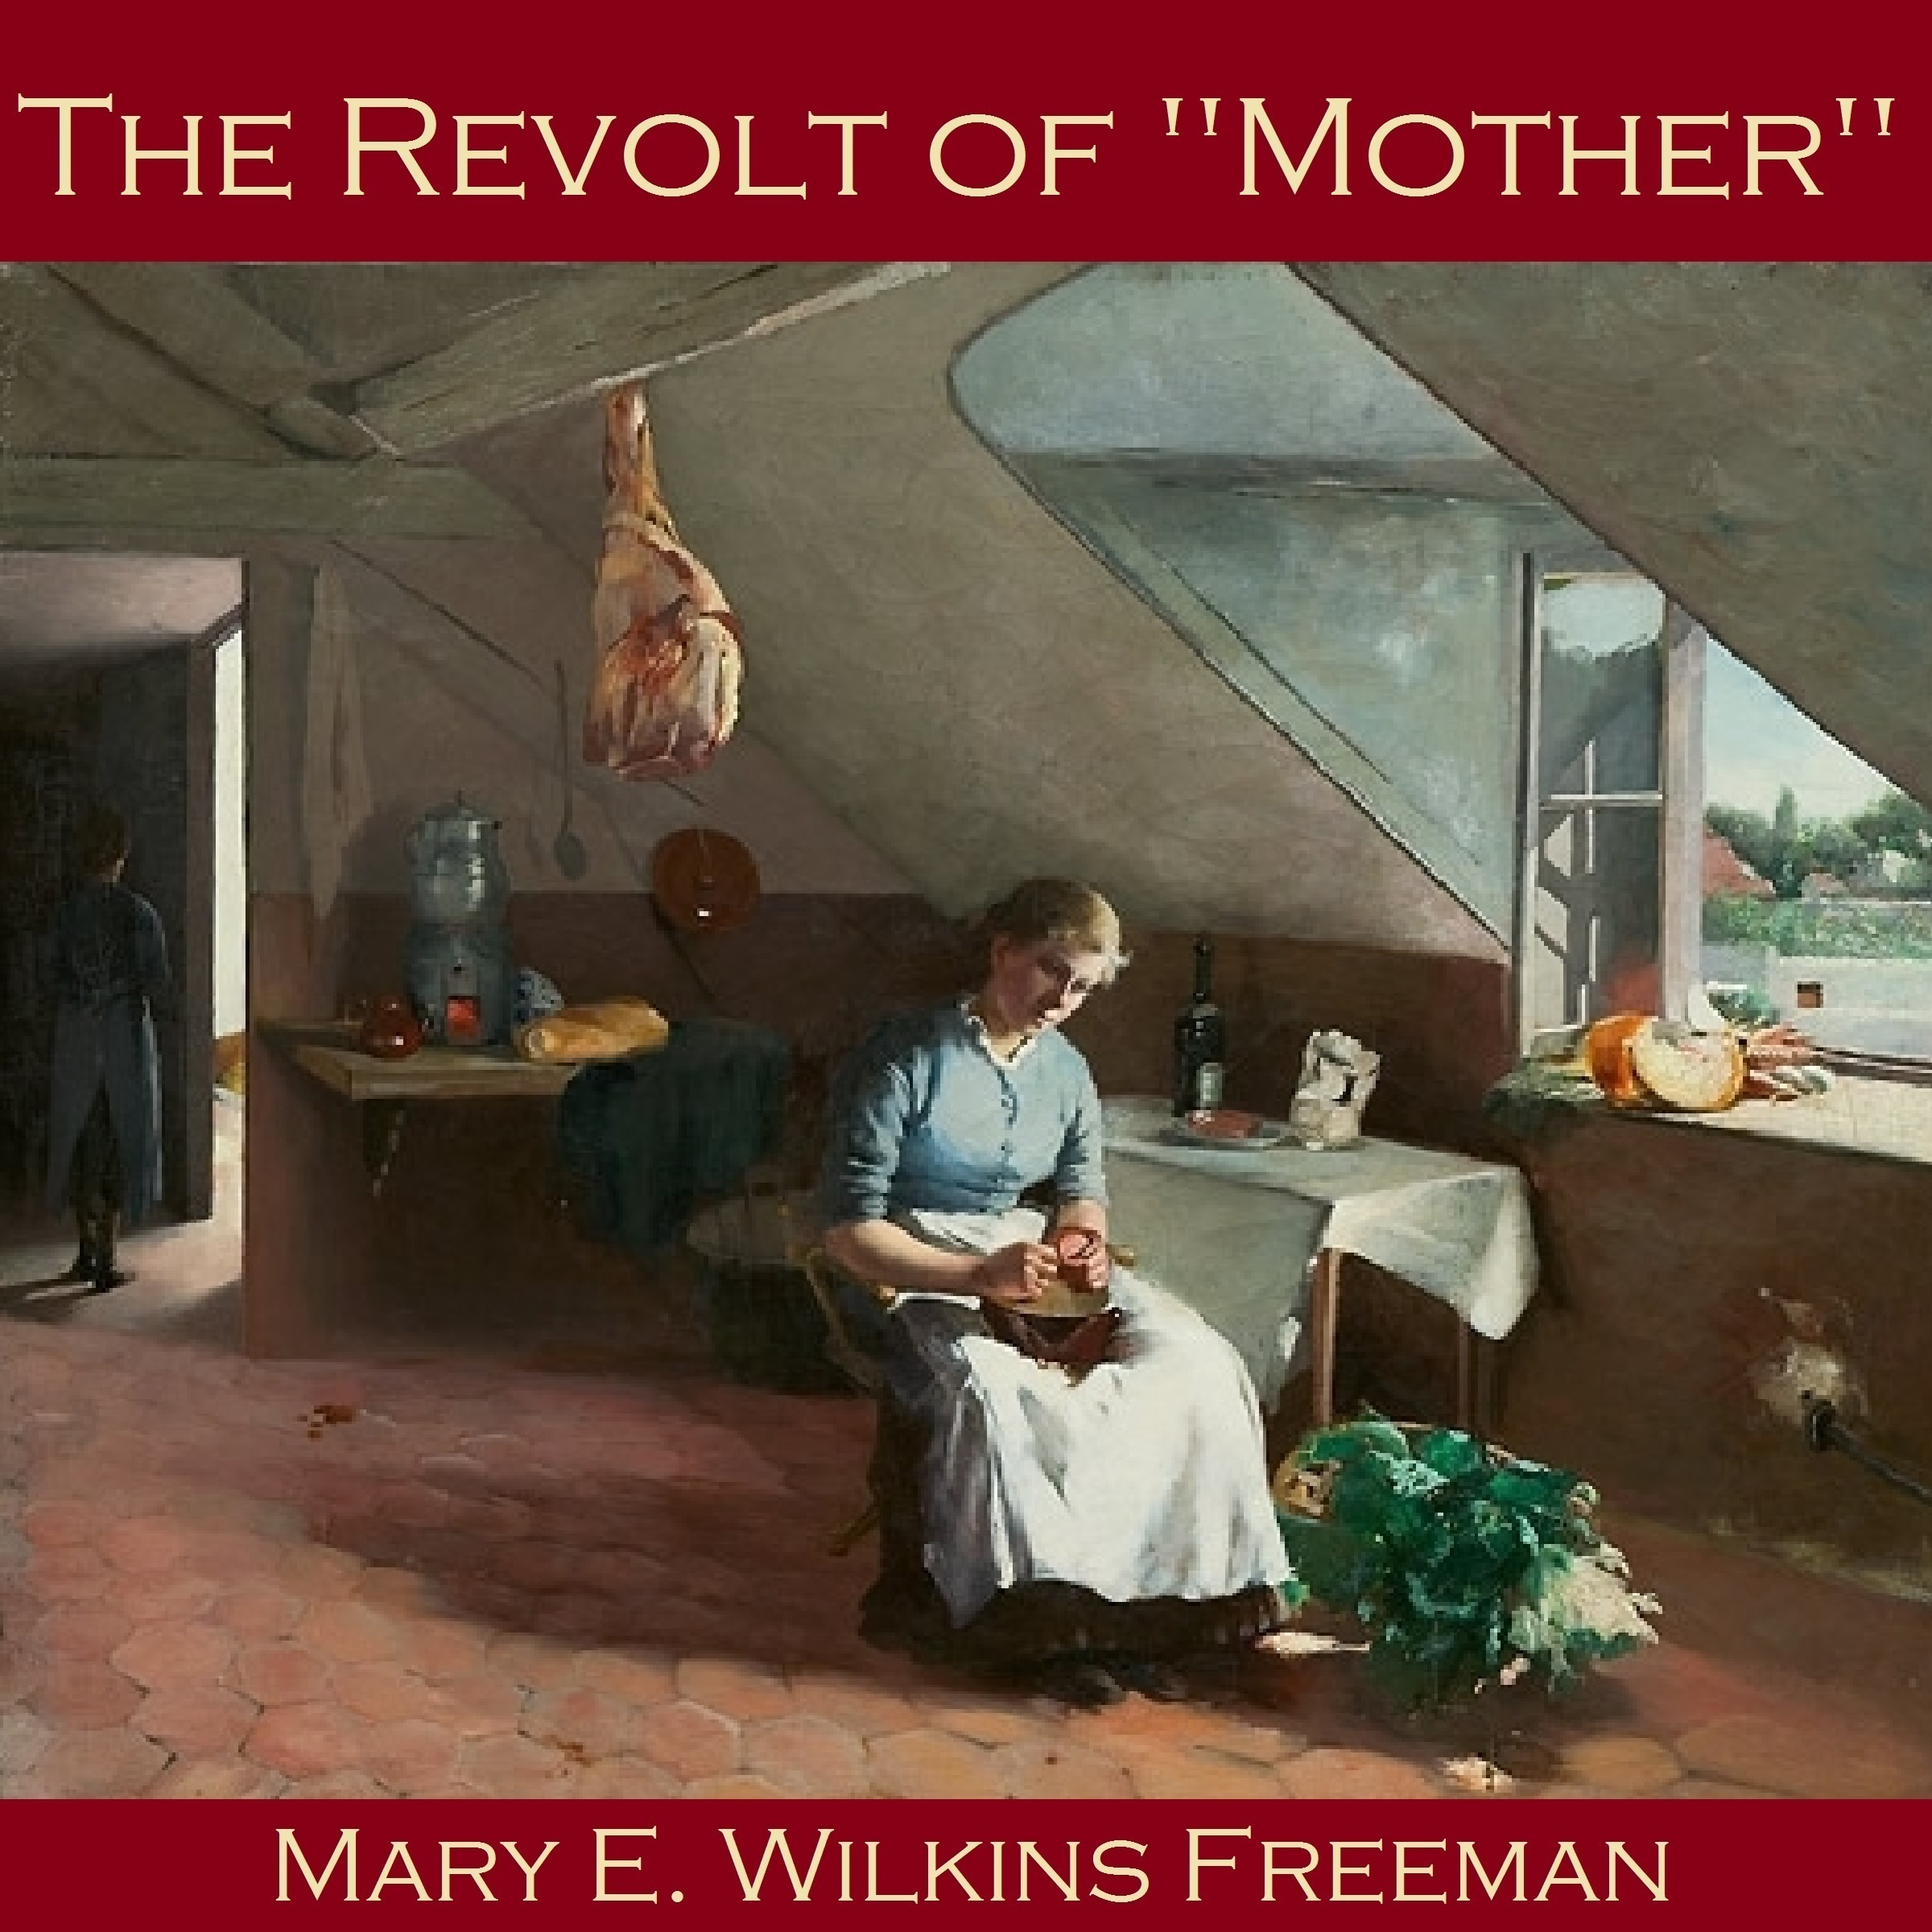 the life story of freemans mother the revolt to mother